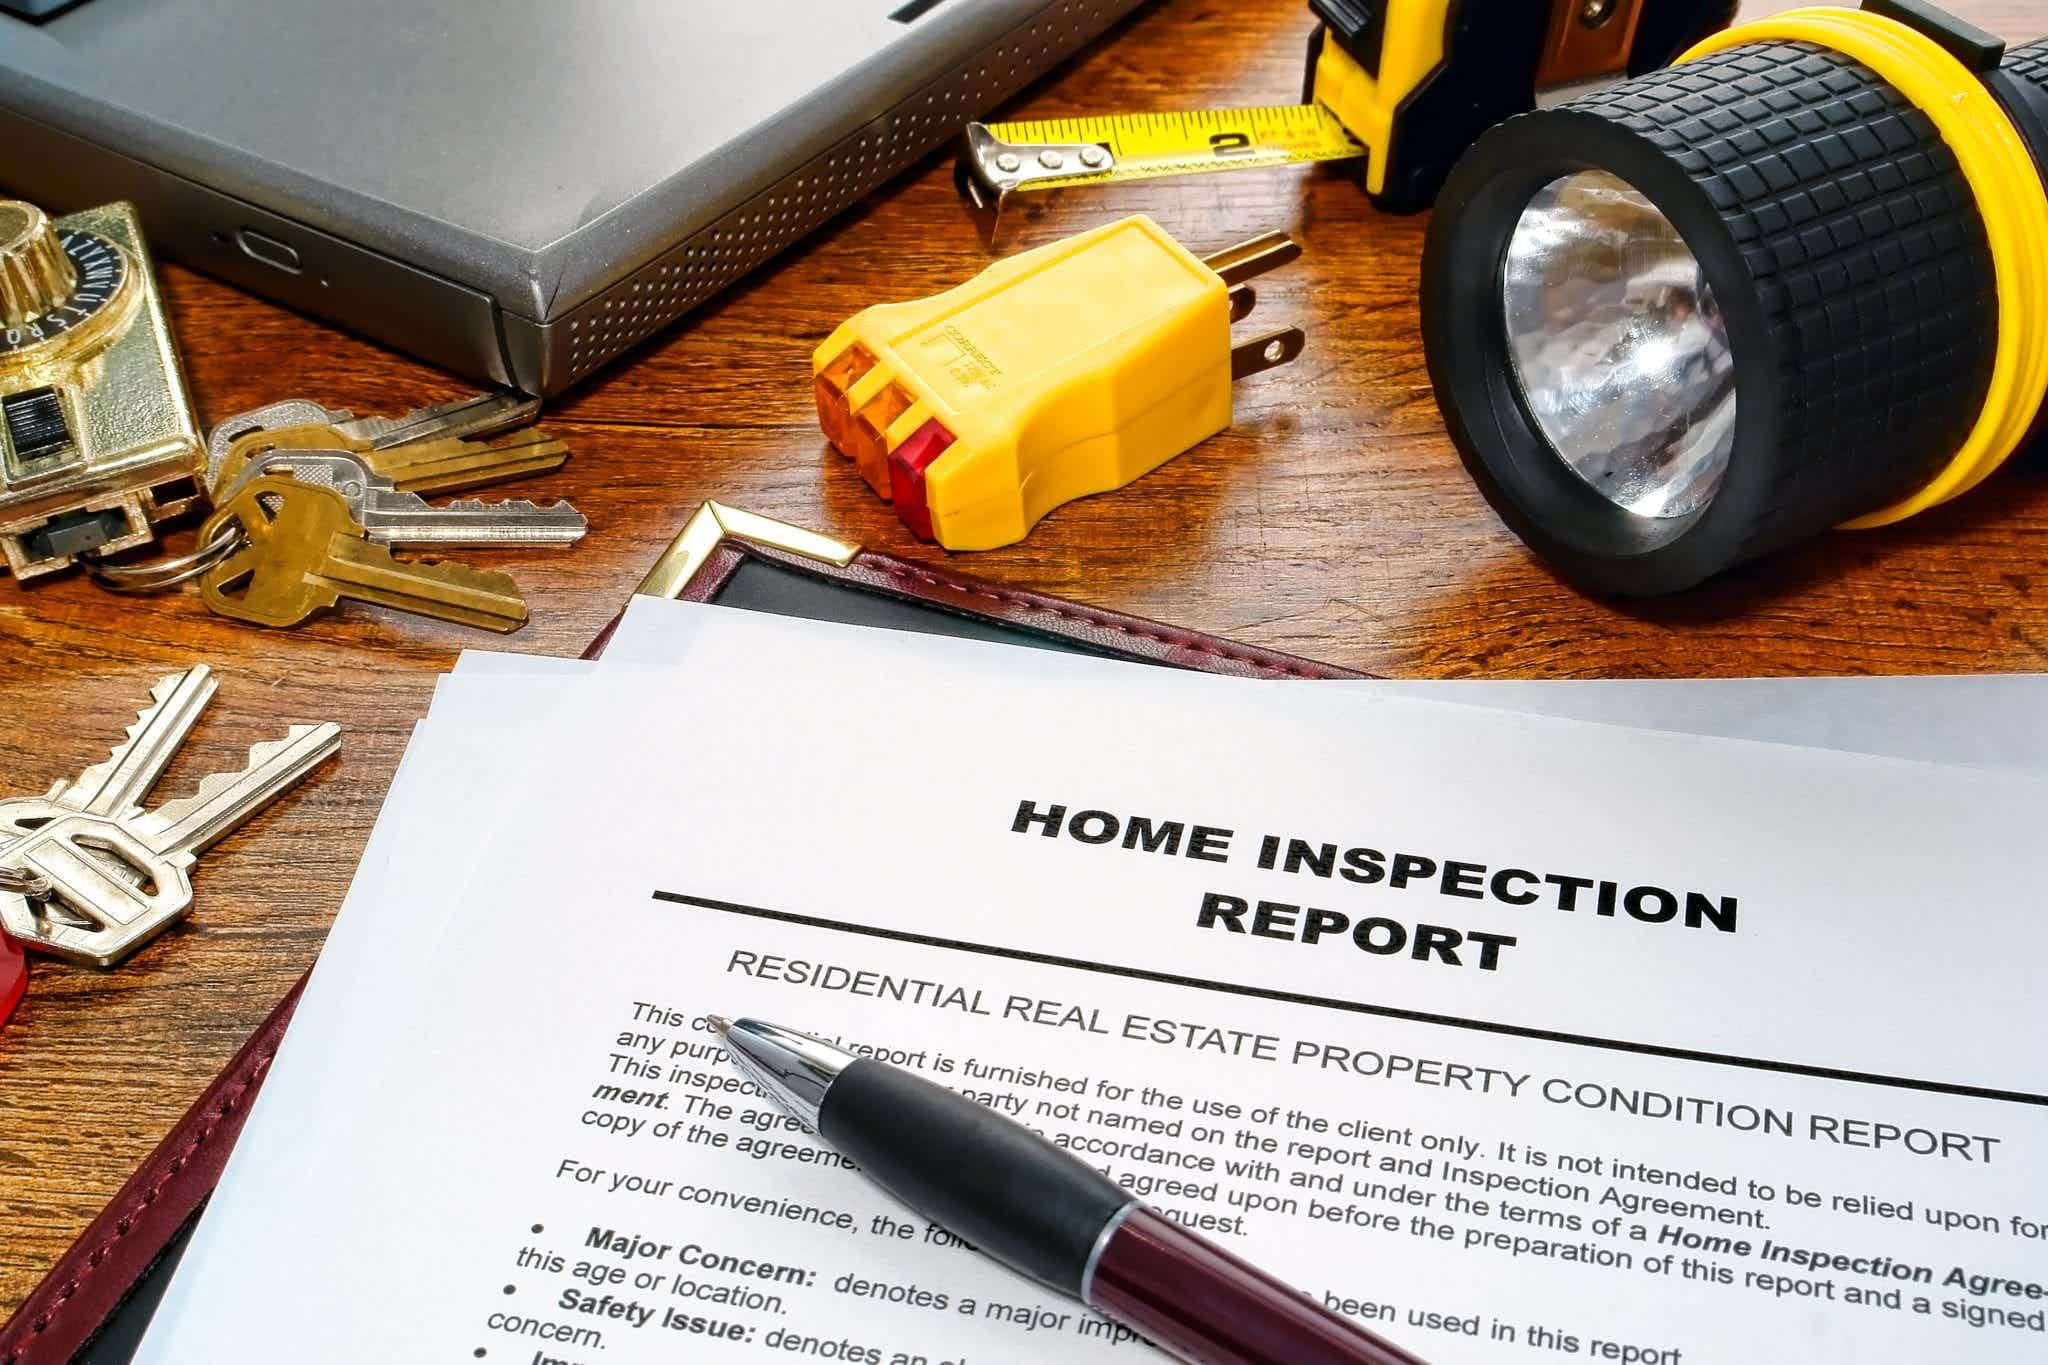 Home inspection report surrounded by pen, keys, and flashlight